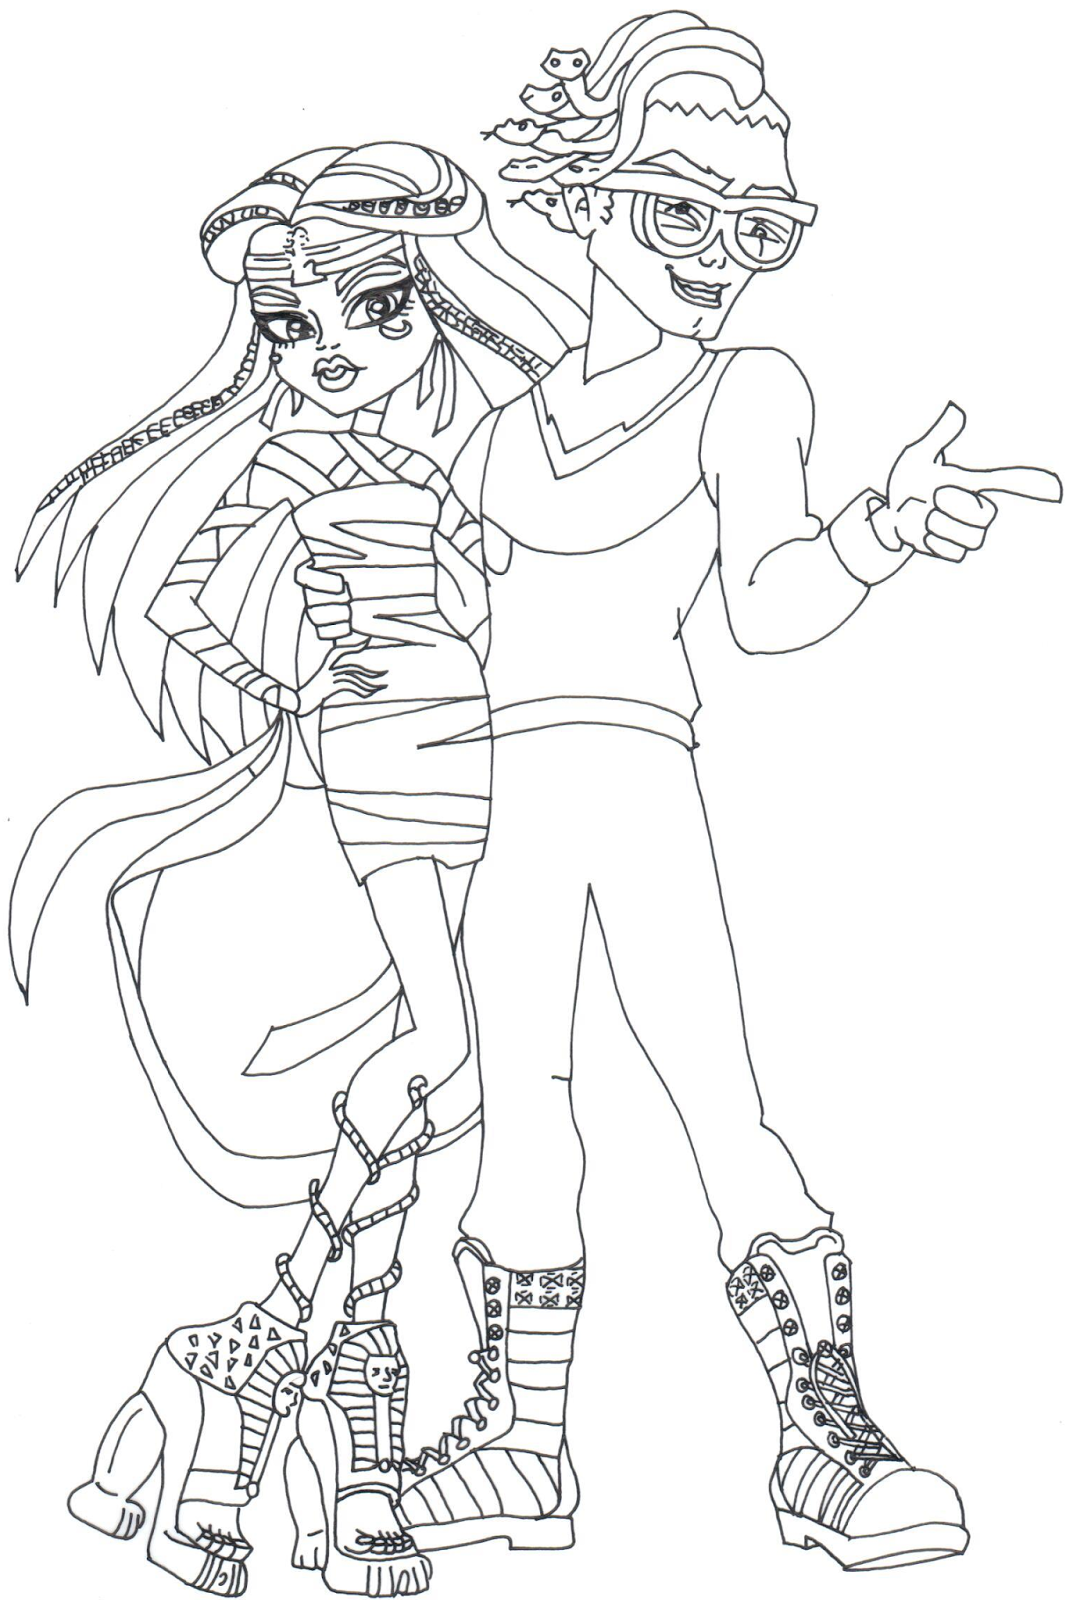 Asombroso Coloring Pages Monster High Boo York Molde Dibujos Para